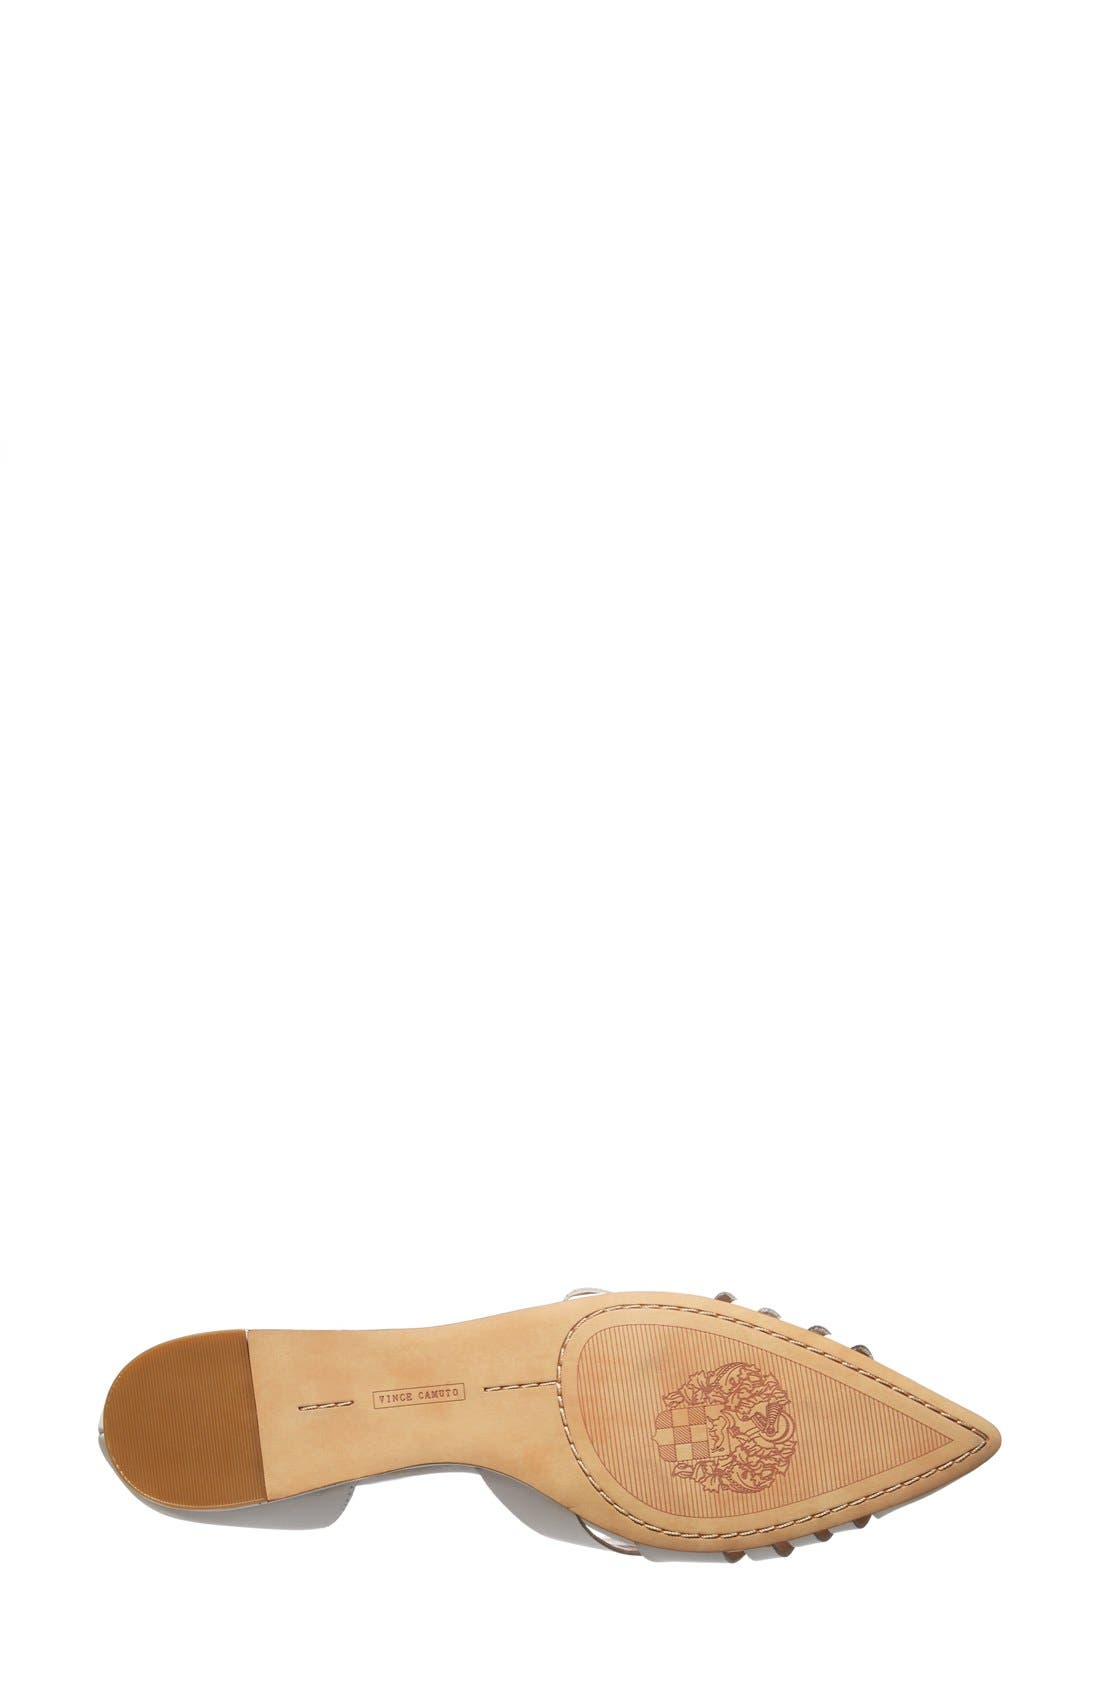 Alternate Image 4  - Vince Camuto 'Hallie' Woven Leather d'Orsay Flat (Women) (Nordstrom Exclusive)